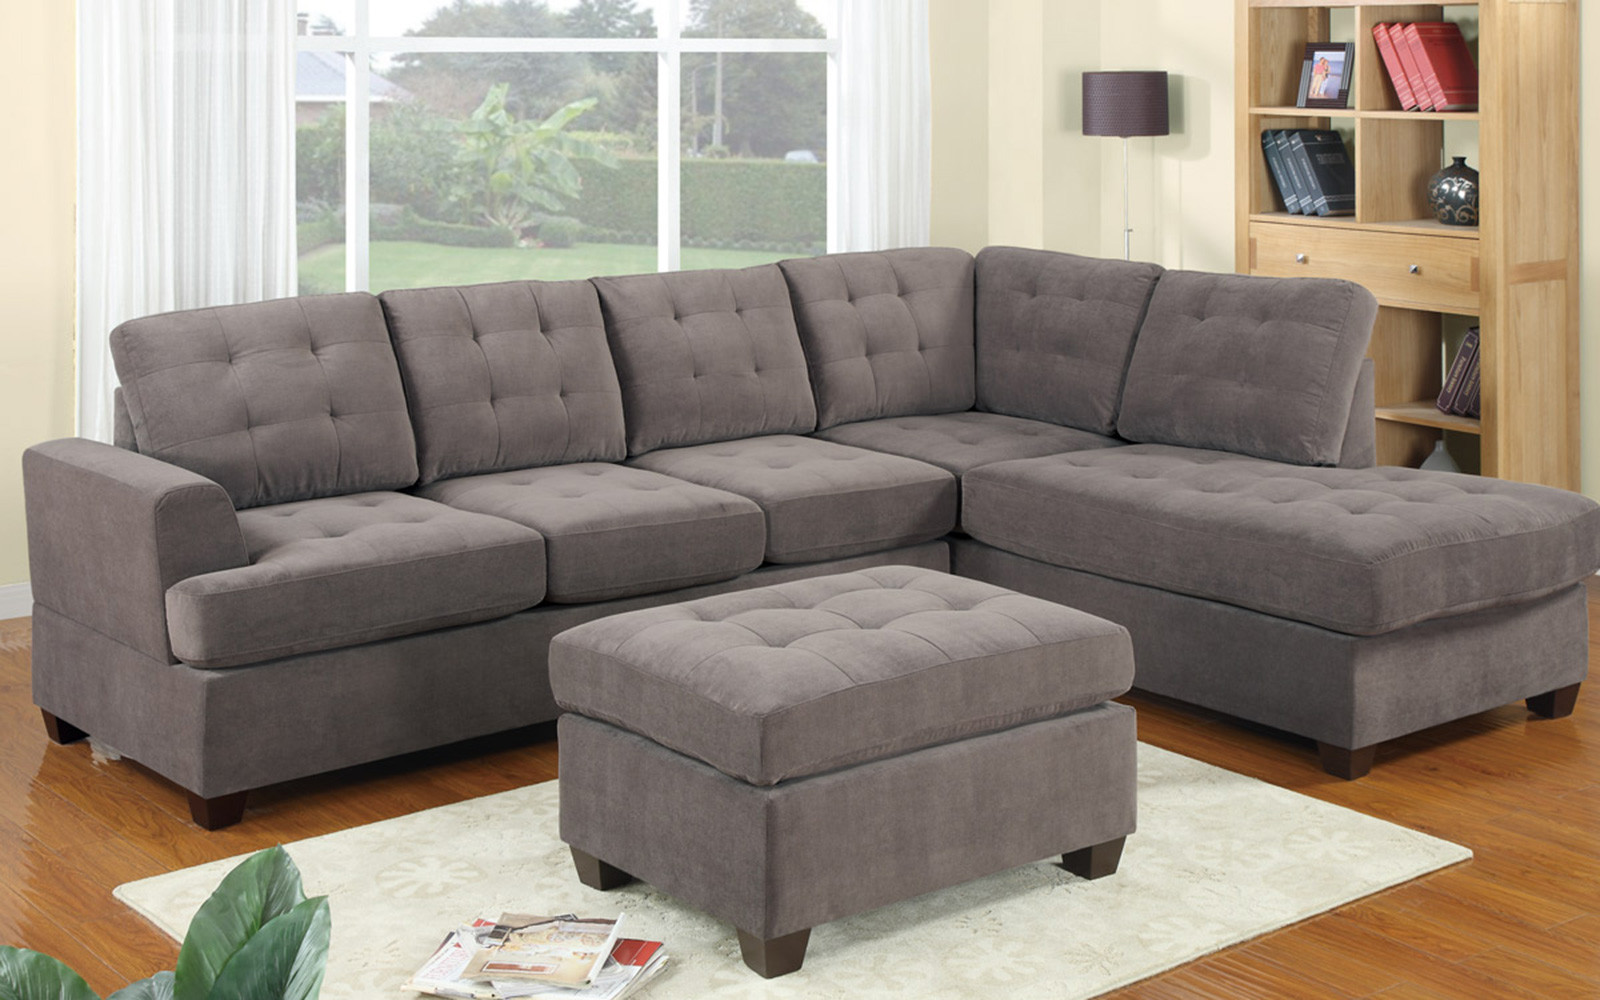 2 Piece Modern Reversible Grey Tufted Microfiber Sectional Sofa with  Ottoman - Traveller Location